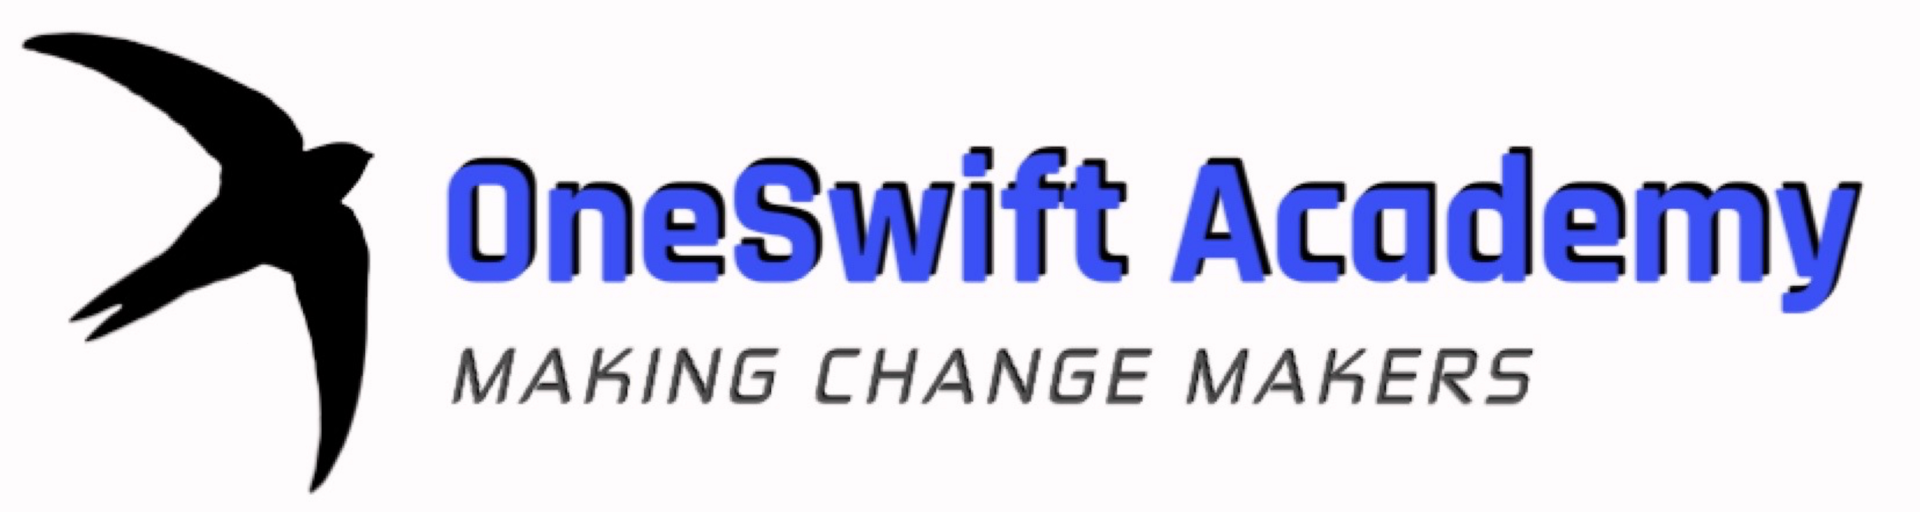 OneSwift Academy Logo Beyond the Horizon partner